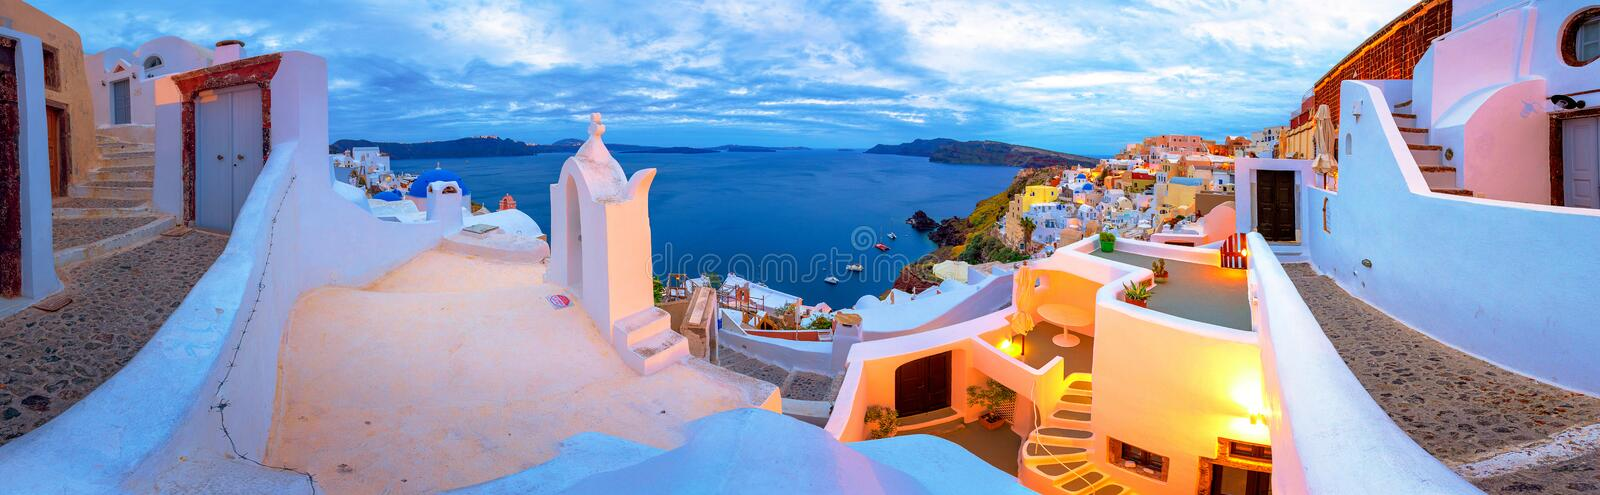 Oia town on Santorini island, Greece. Traditional and famous houses and churches with blue domes over the Caldera. stock image